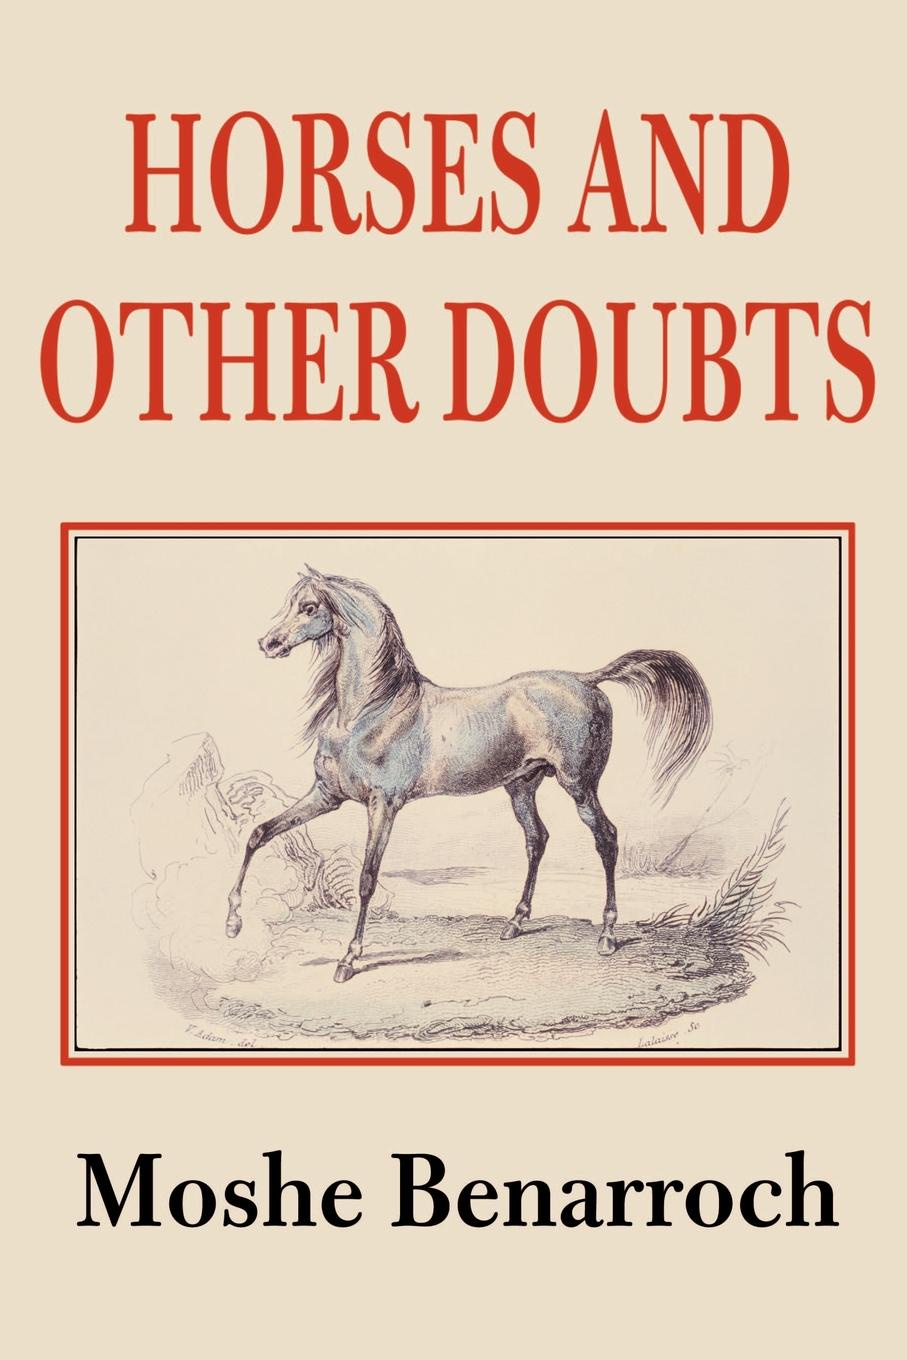 Moshe Benarroch Horses and Other Doubts horses